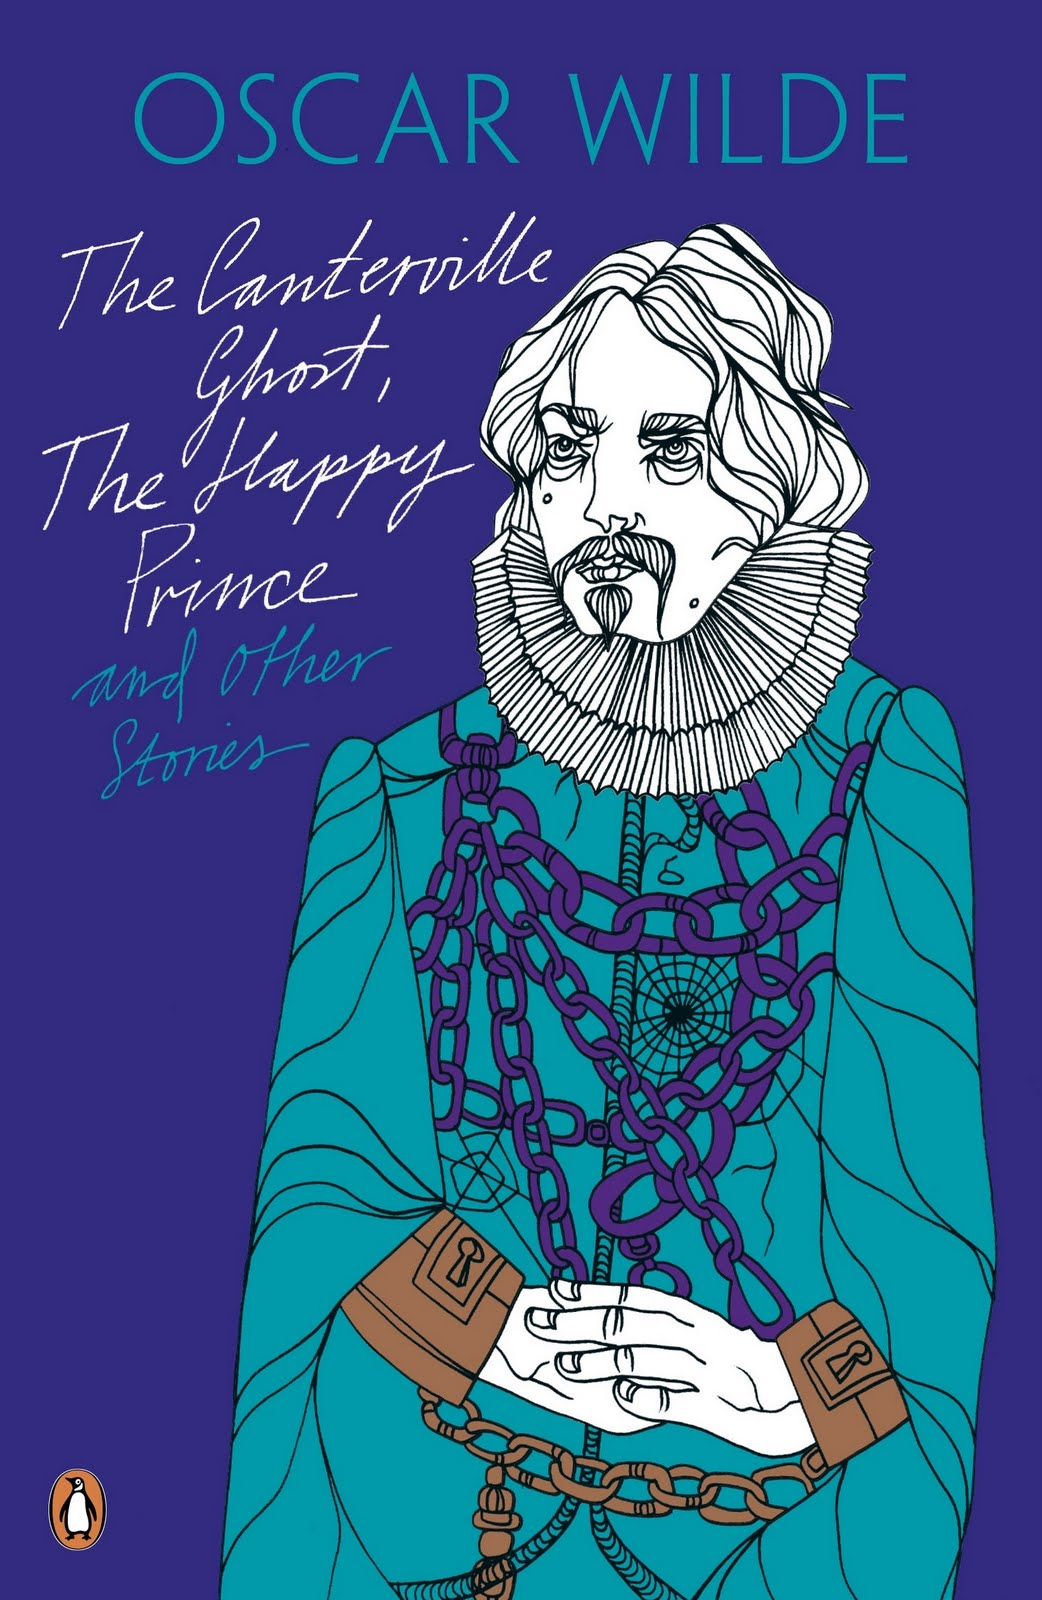 the happy prince and other tales book summary essay Wikipedia book - the happy prince and other tales librivox recording of a german translation  the happy prince and other tales oscar wilde (1854 - 1900) collection of children's stories written in 1888, dealing primarily with love and selfishness these stories are generally sad, with a moralistic message the collection includes: the happy prince, the nightingale and the rose, the selfish giant, the devoted friend, and the remarkable rocket (summary written by joy chan.